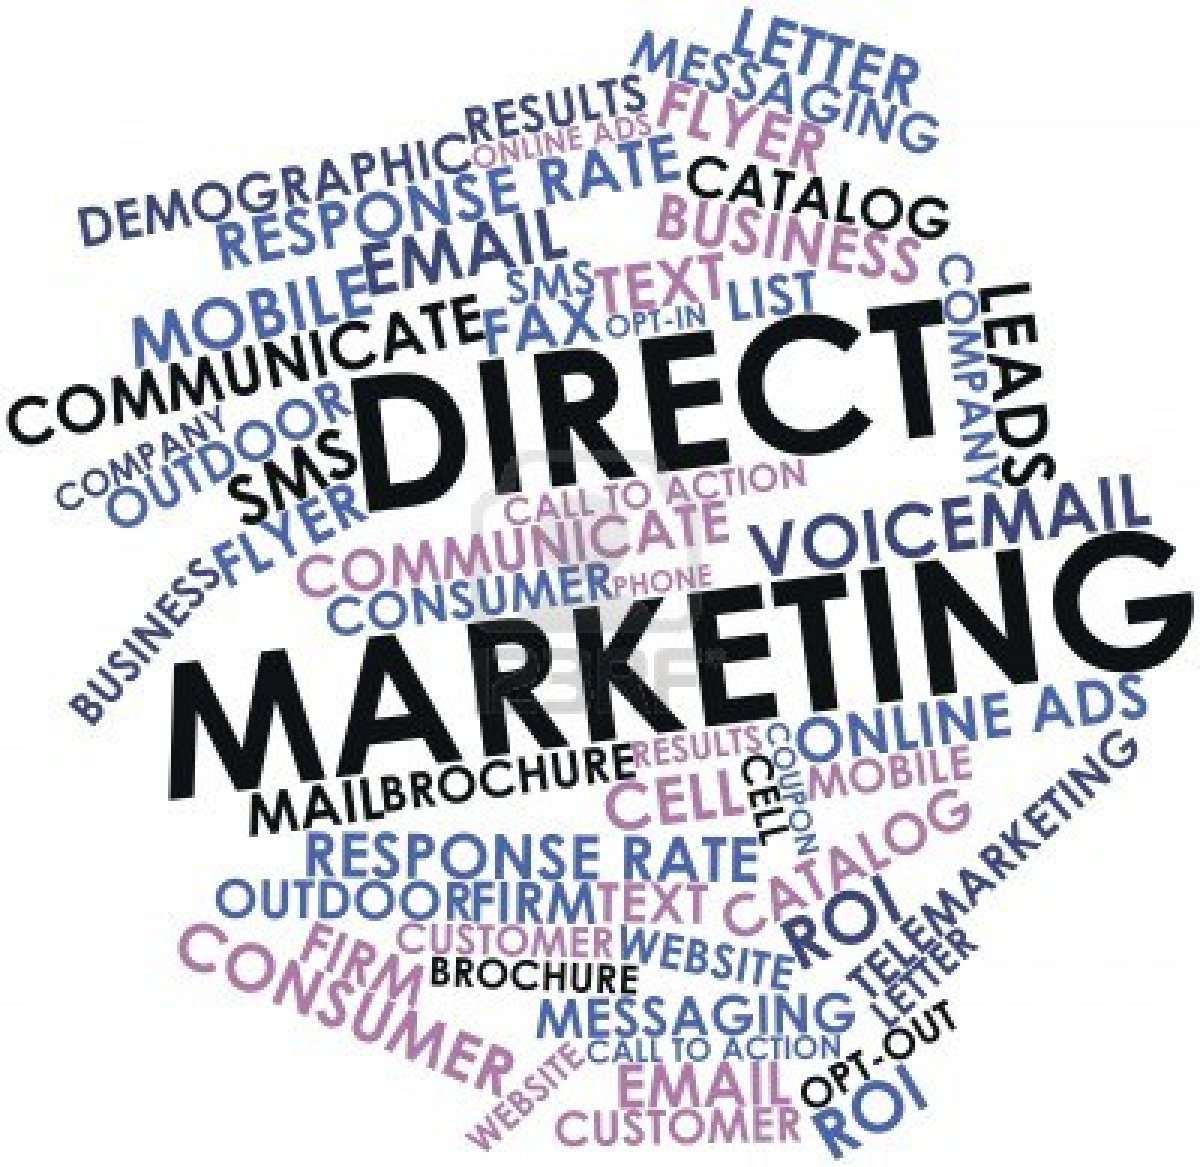 Marketing: Direct Marketing Works! (and Employs 150 000 In South Africa